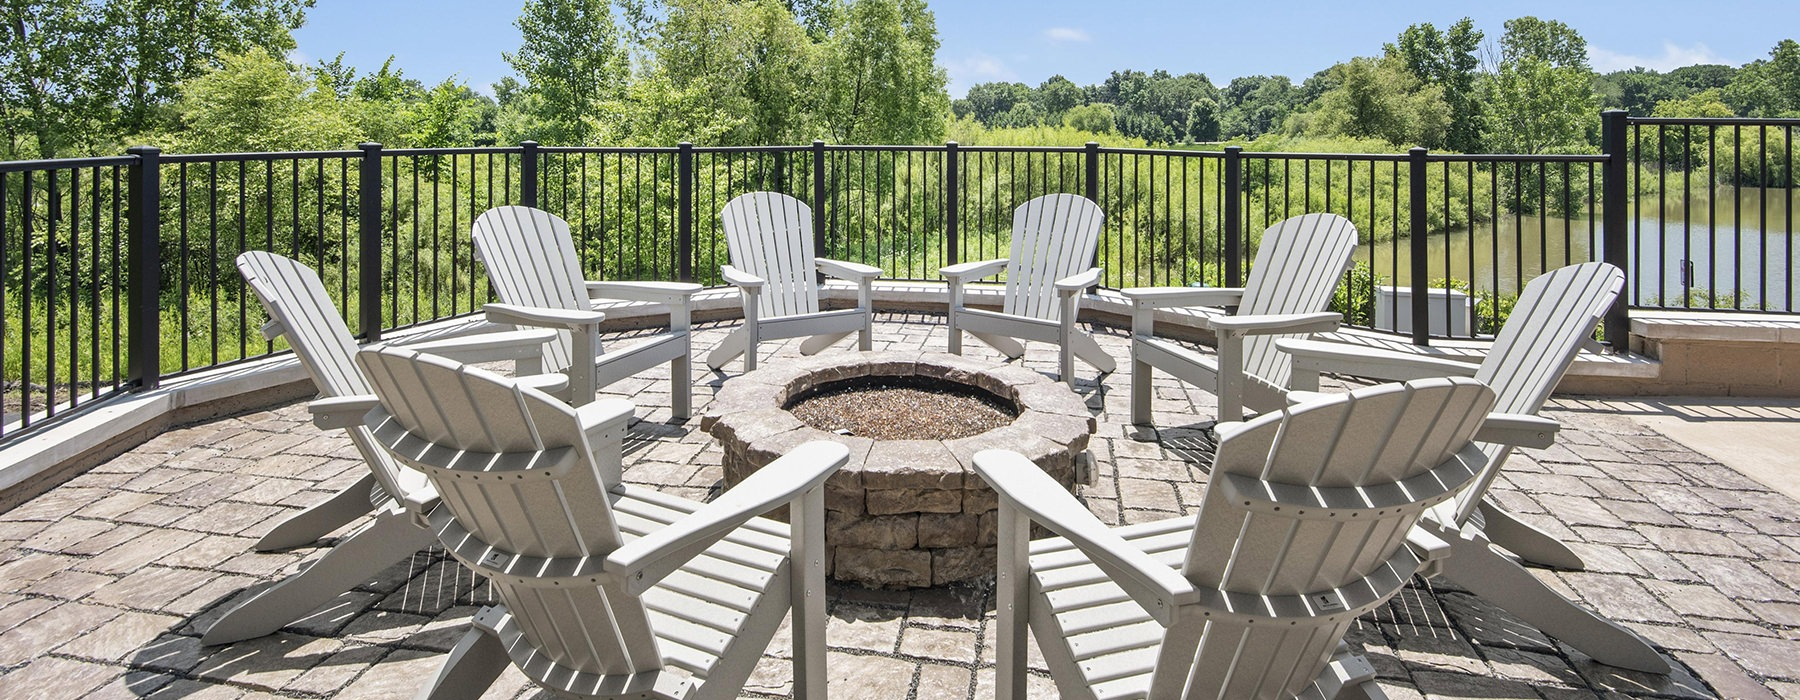 fire pit with adirondack chairs